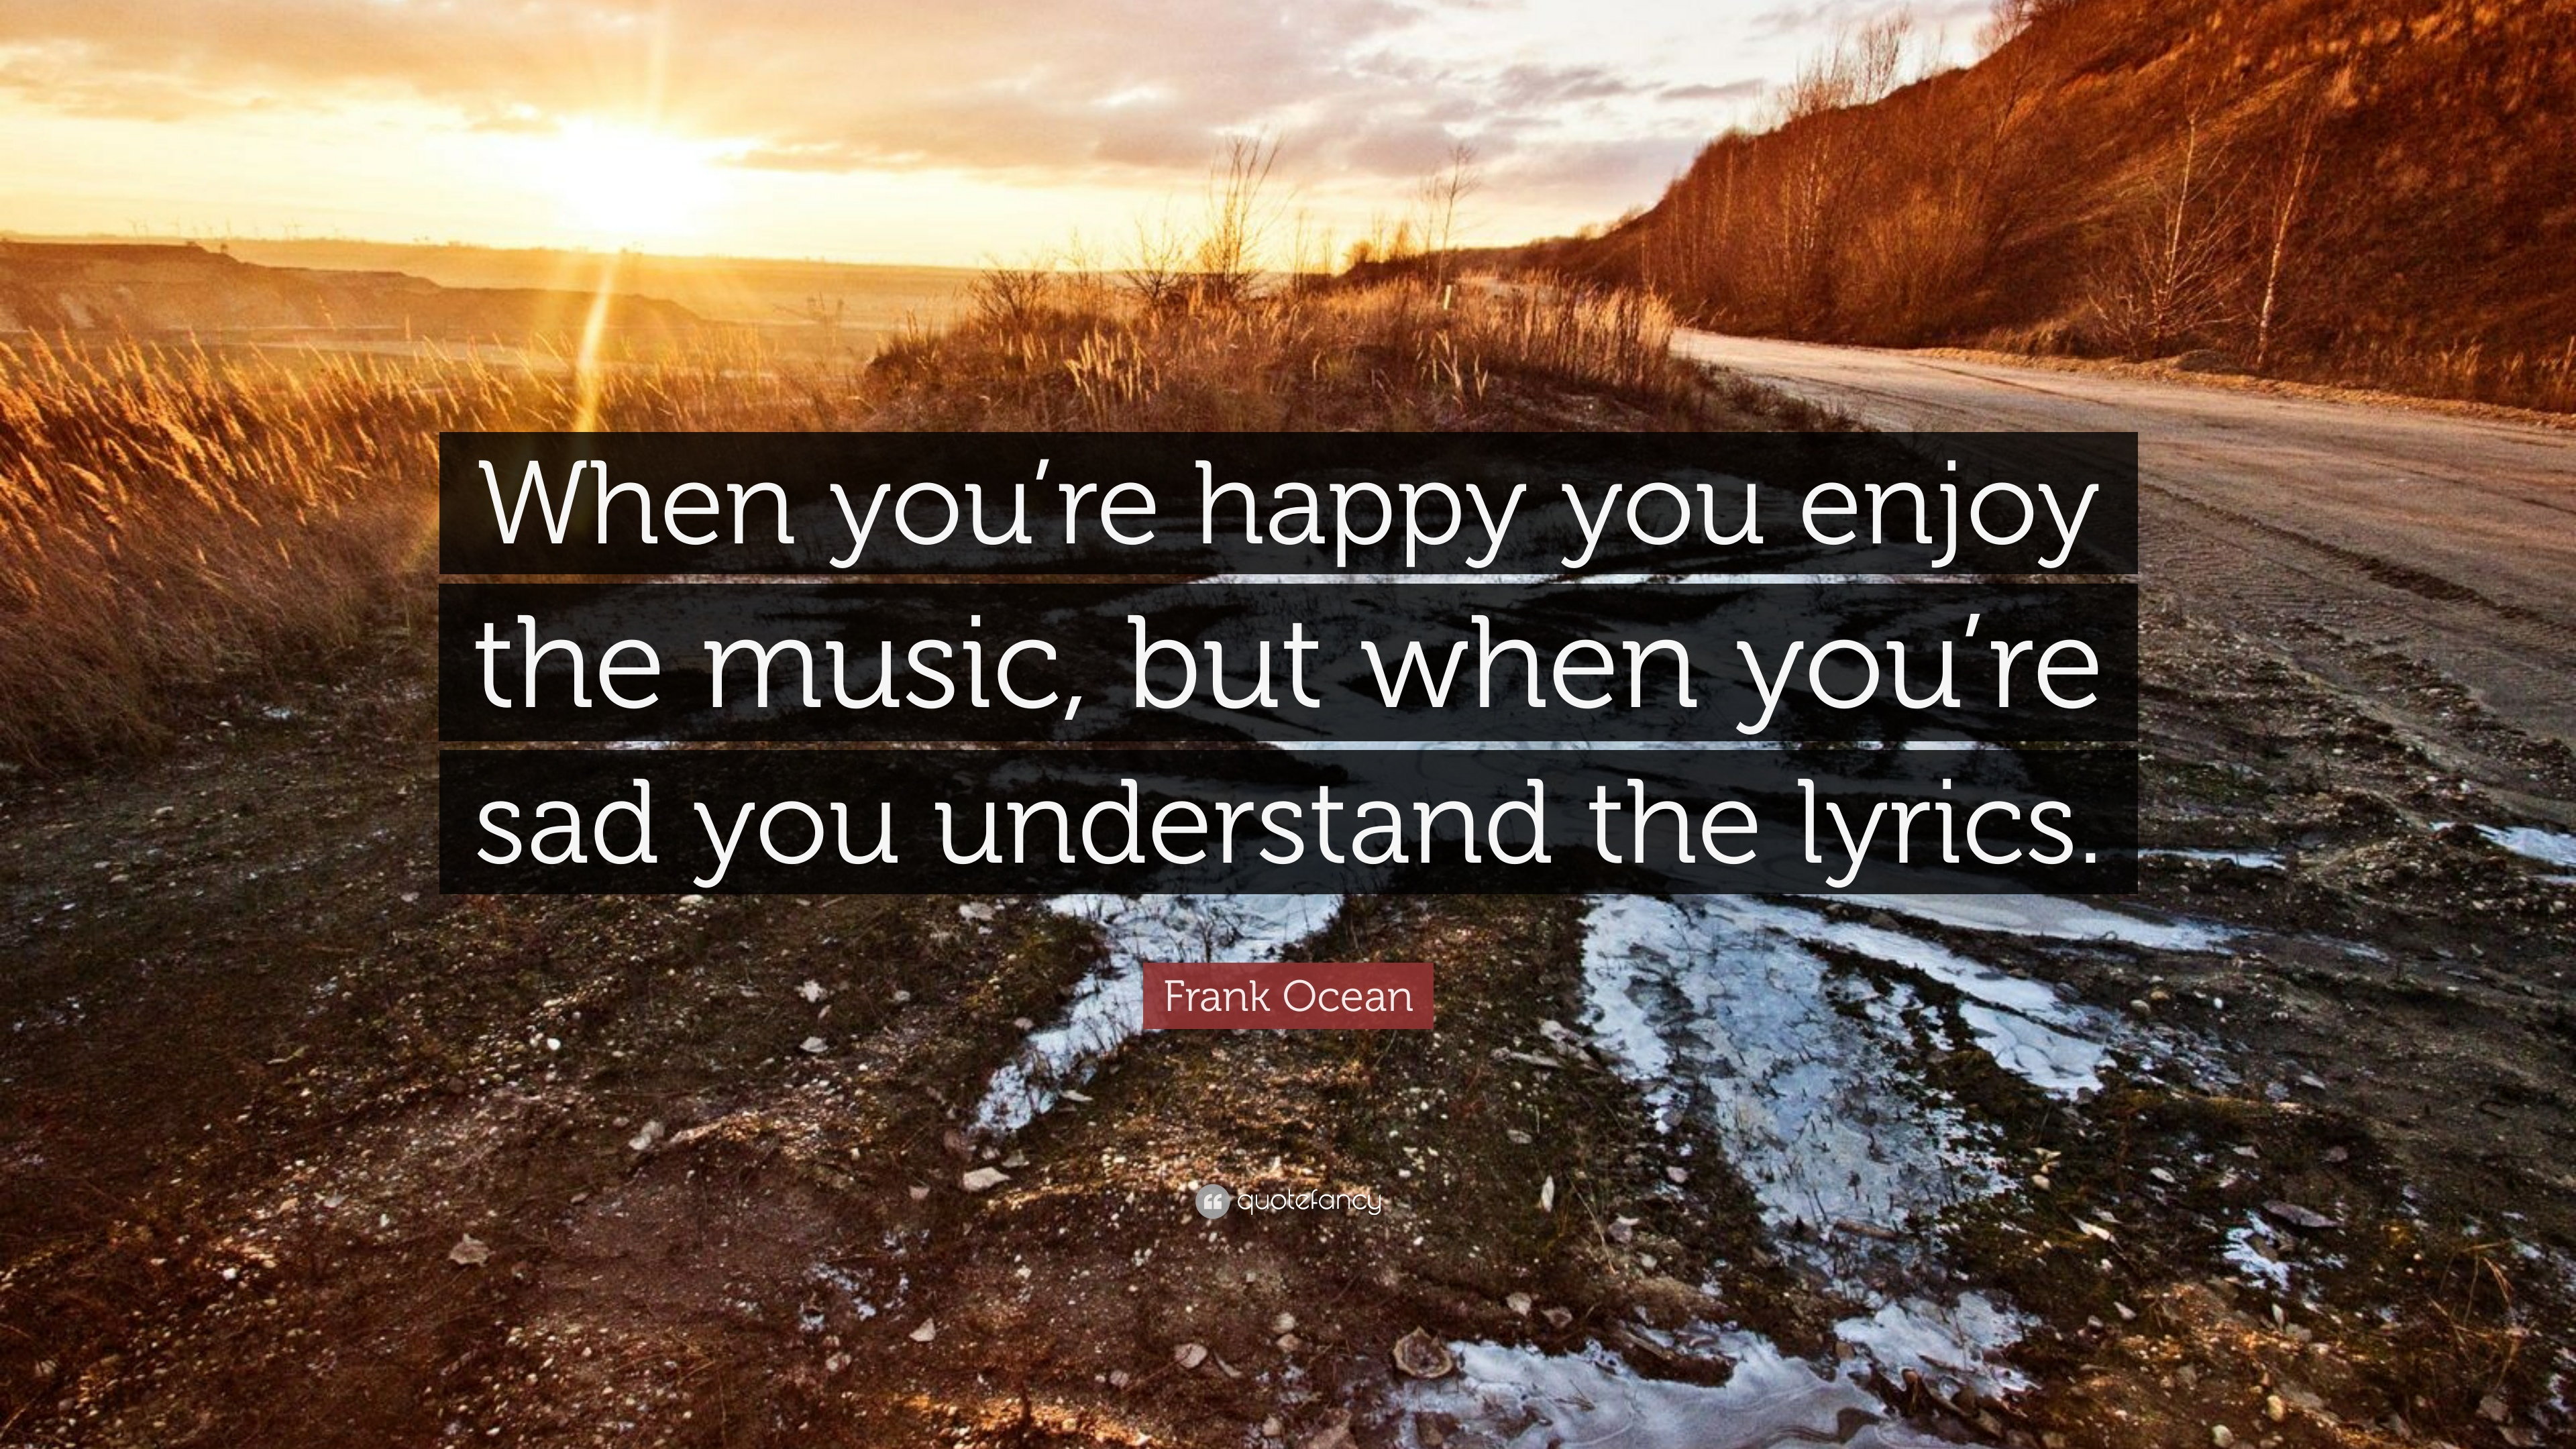 Frank Ocean Quote When Youre Happy You Enjoy The Music But When